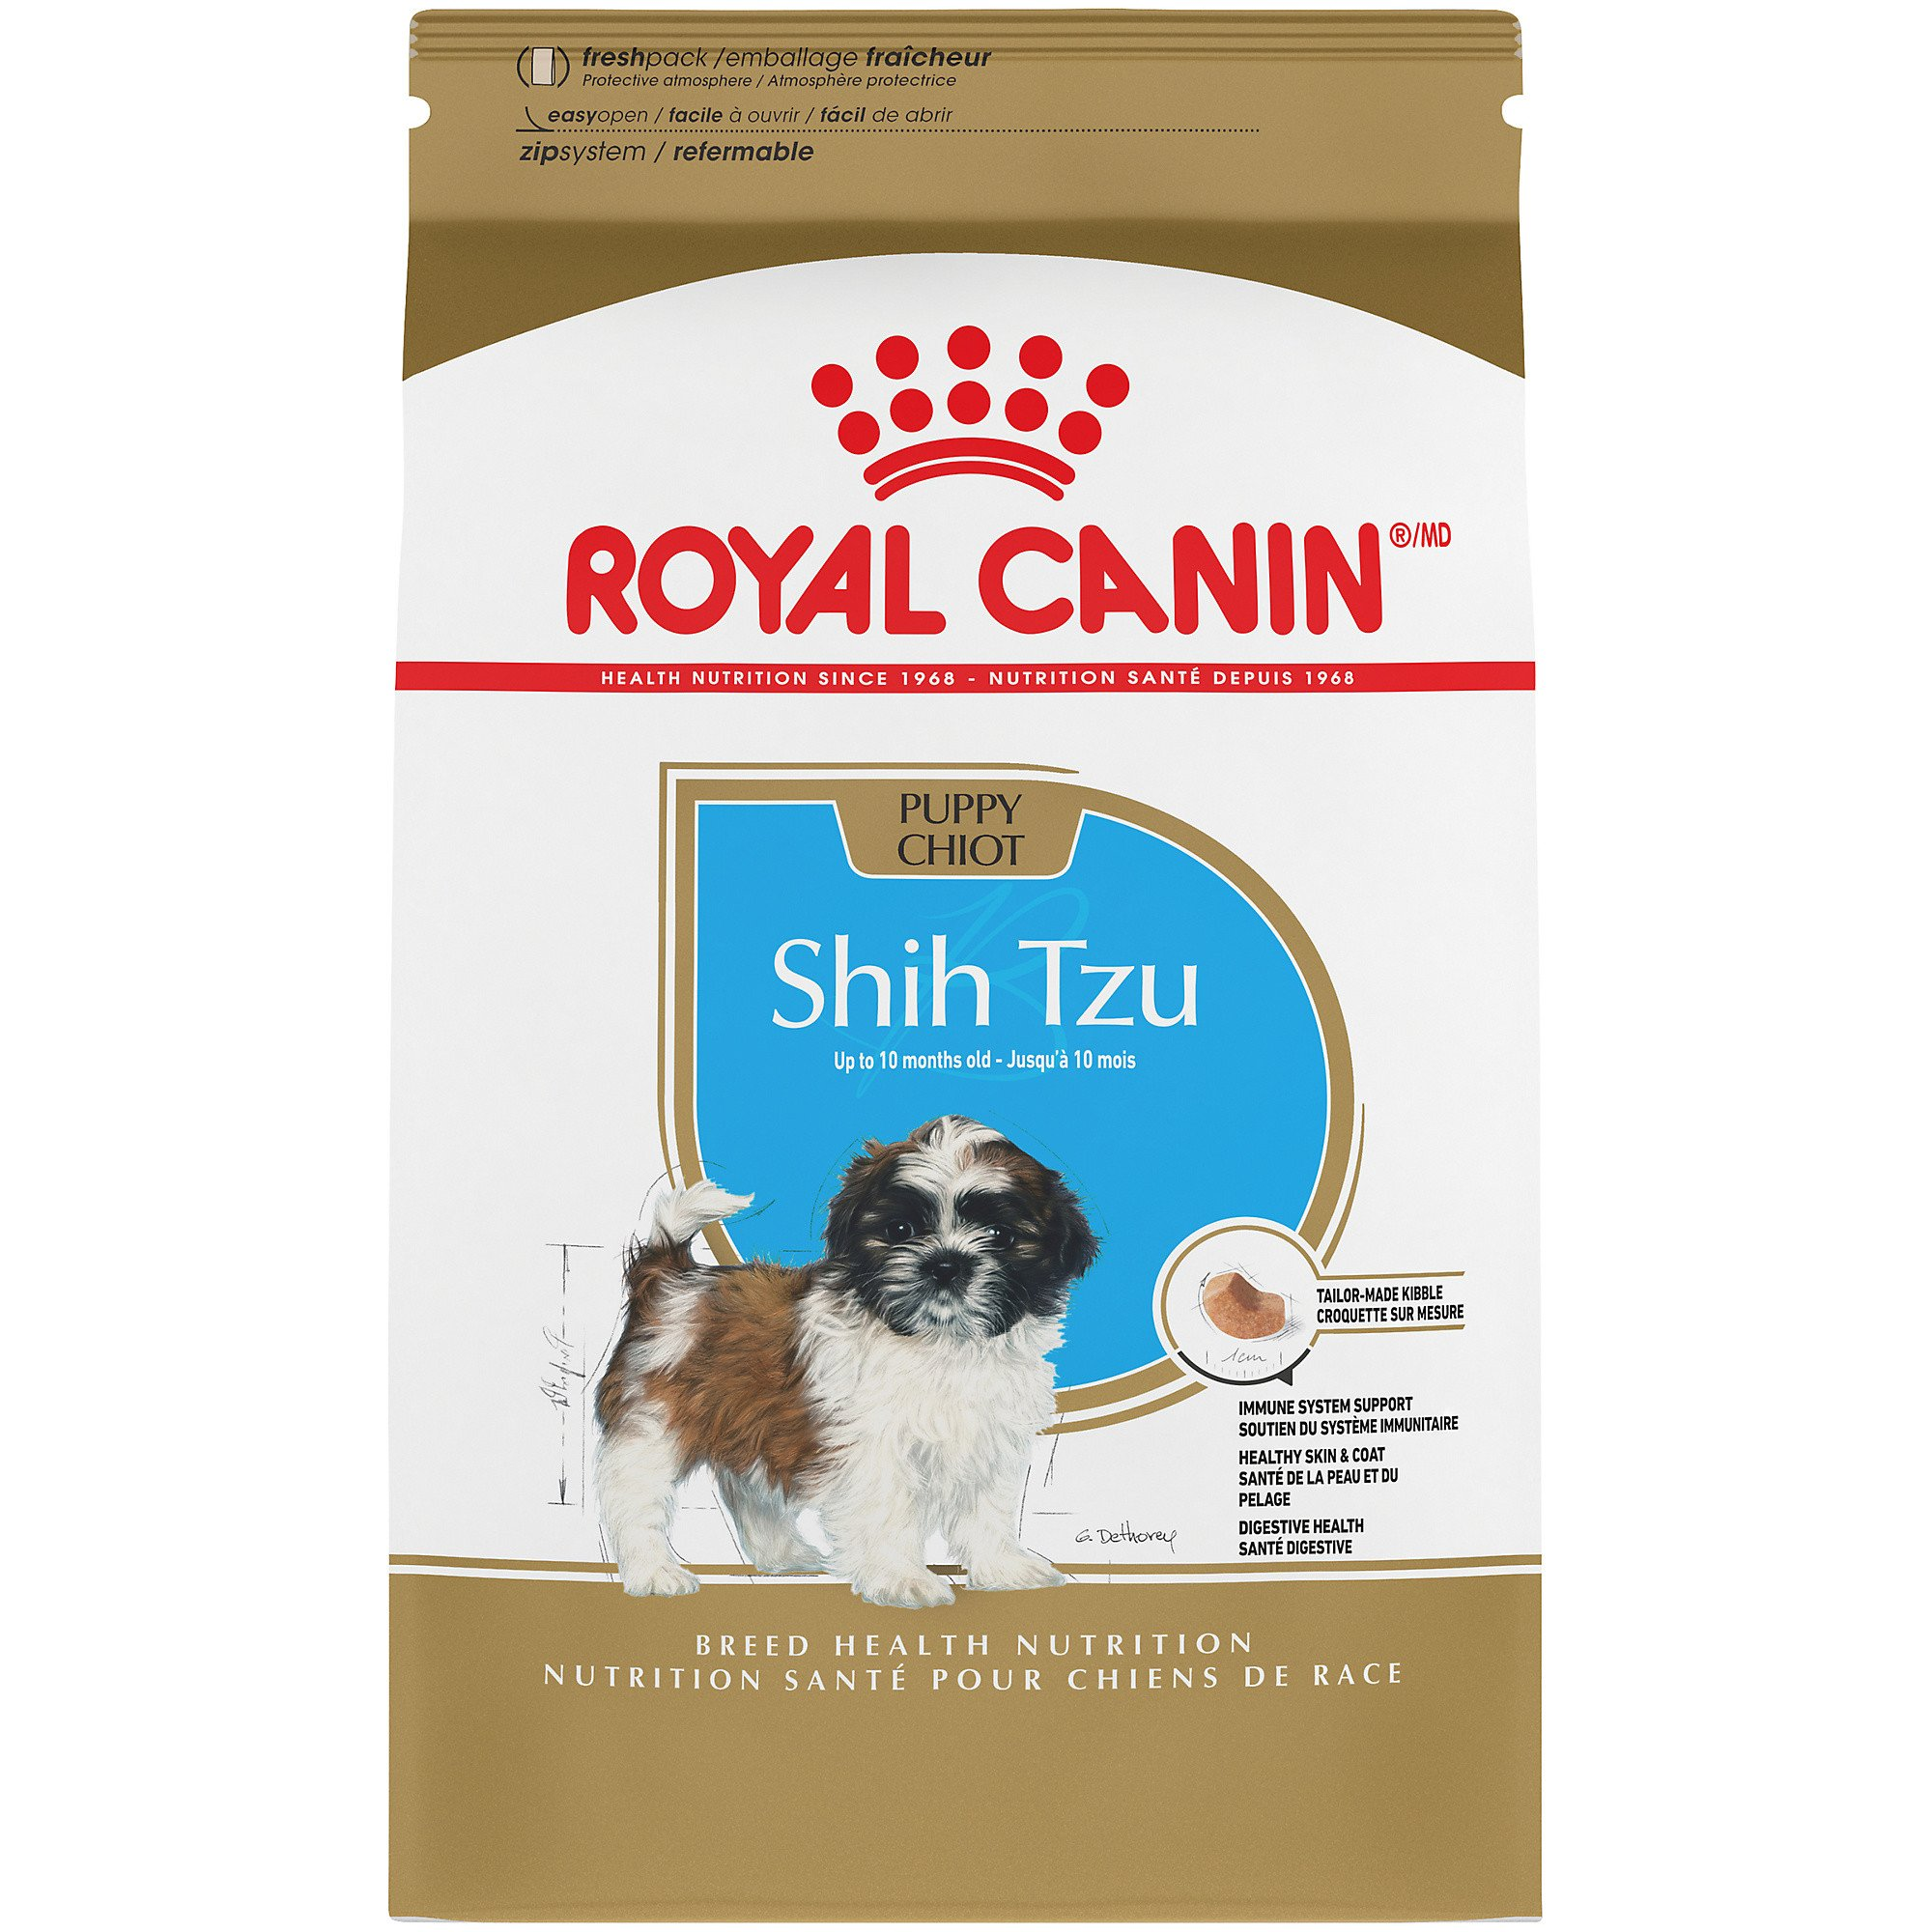 Orijen Dog Food Reviews >> royal canin food reviews | Foodfash.co